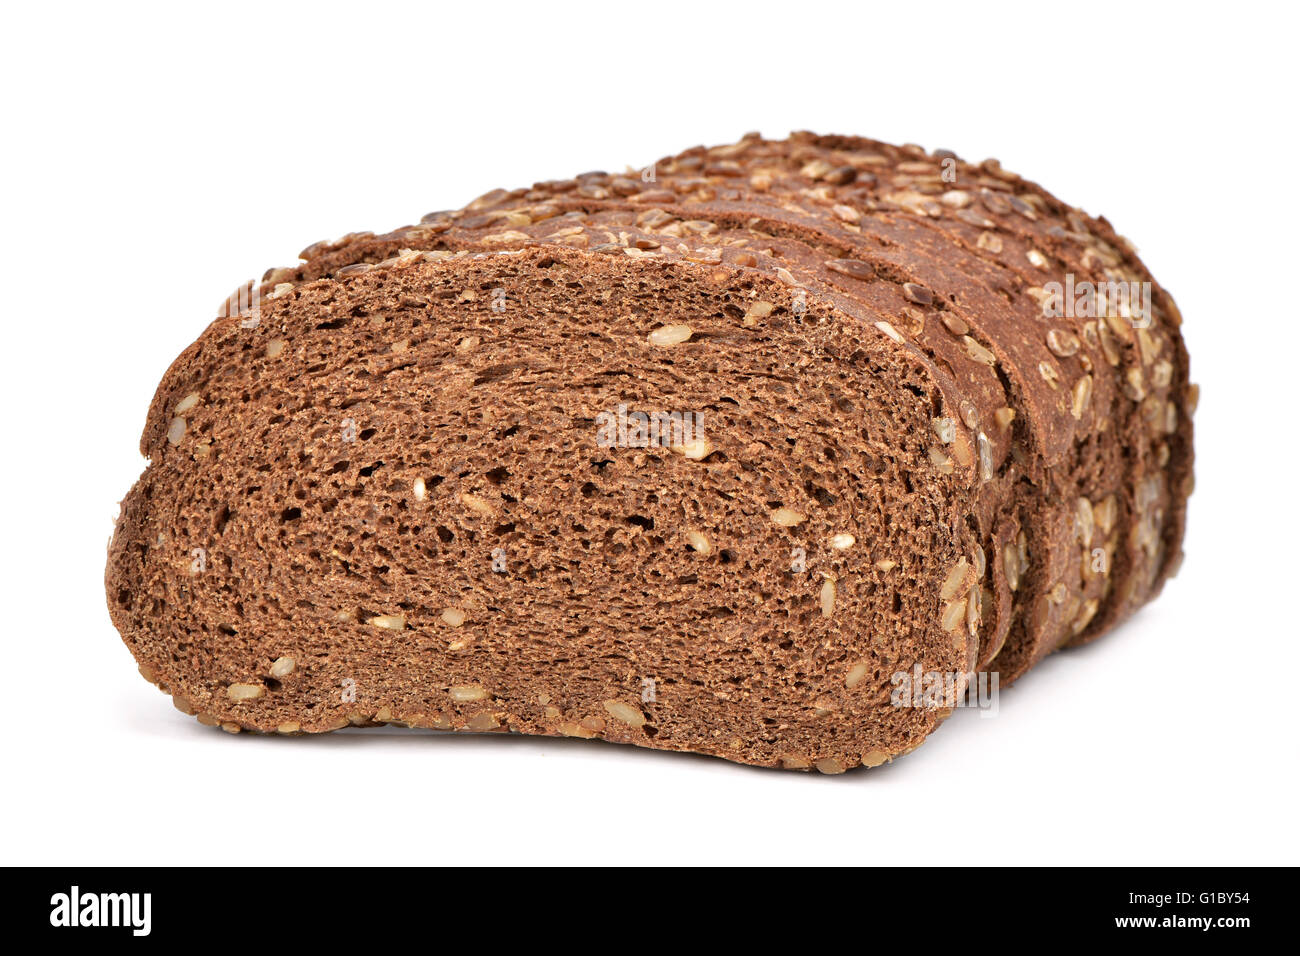 some slices of rye bread on a white background - Stock Image